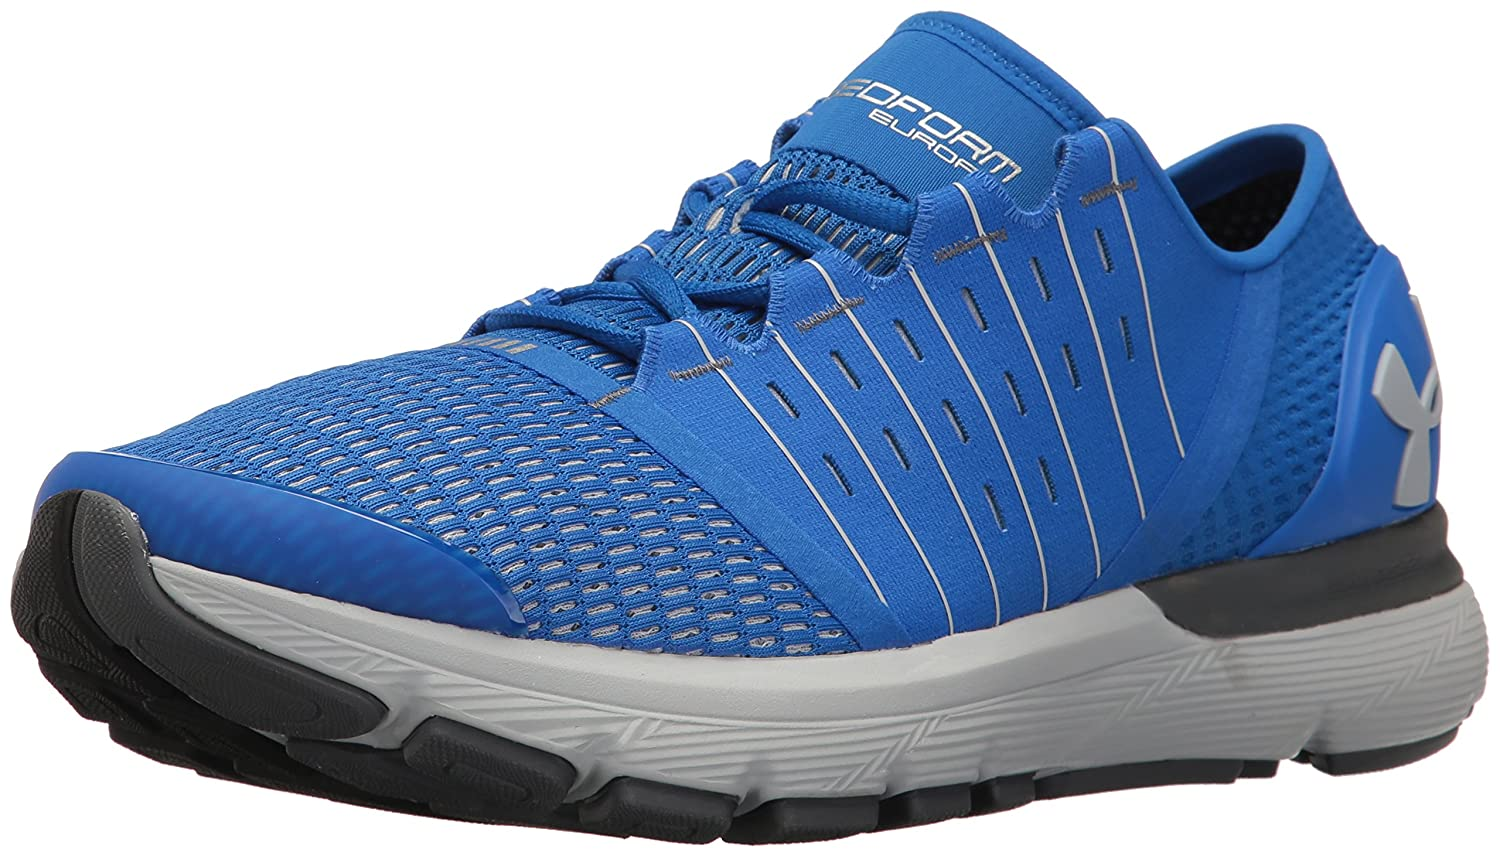 Under Armour Speedform Europa Zapatillas Para Correr - SS17 48.5 EU|Azul